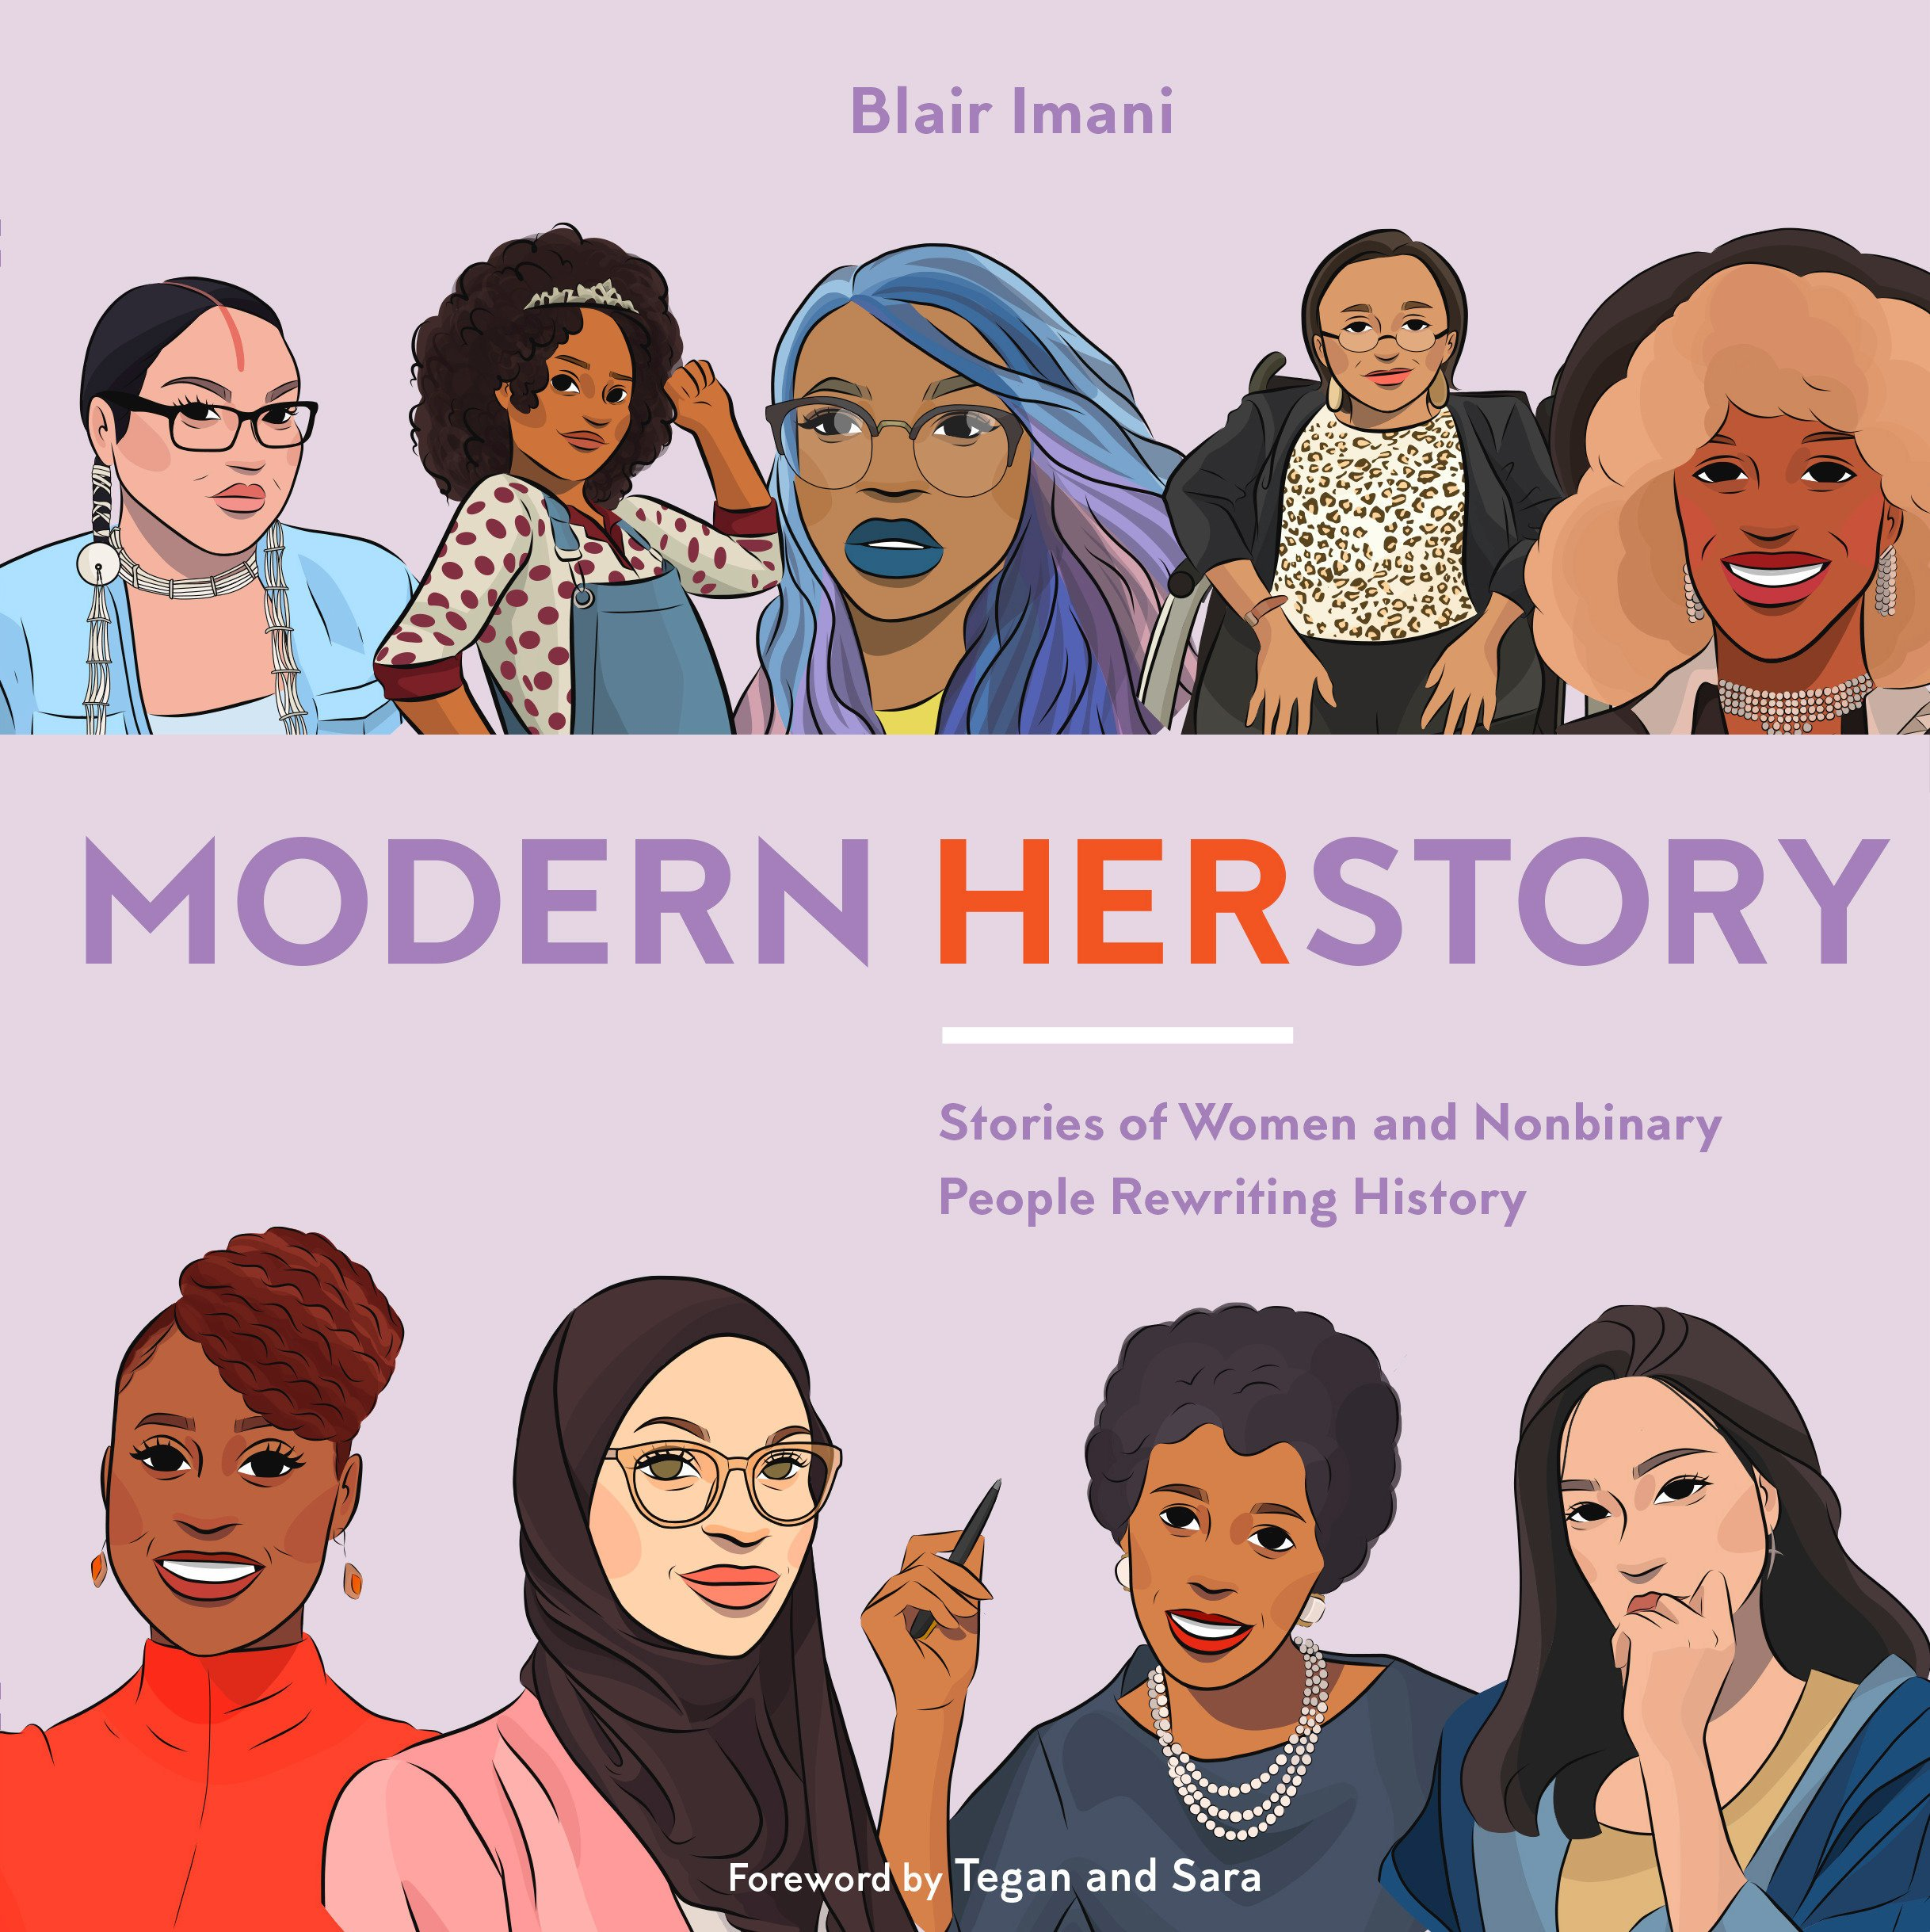 Modern HERstory: Stories of Women and Nonbinary People